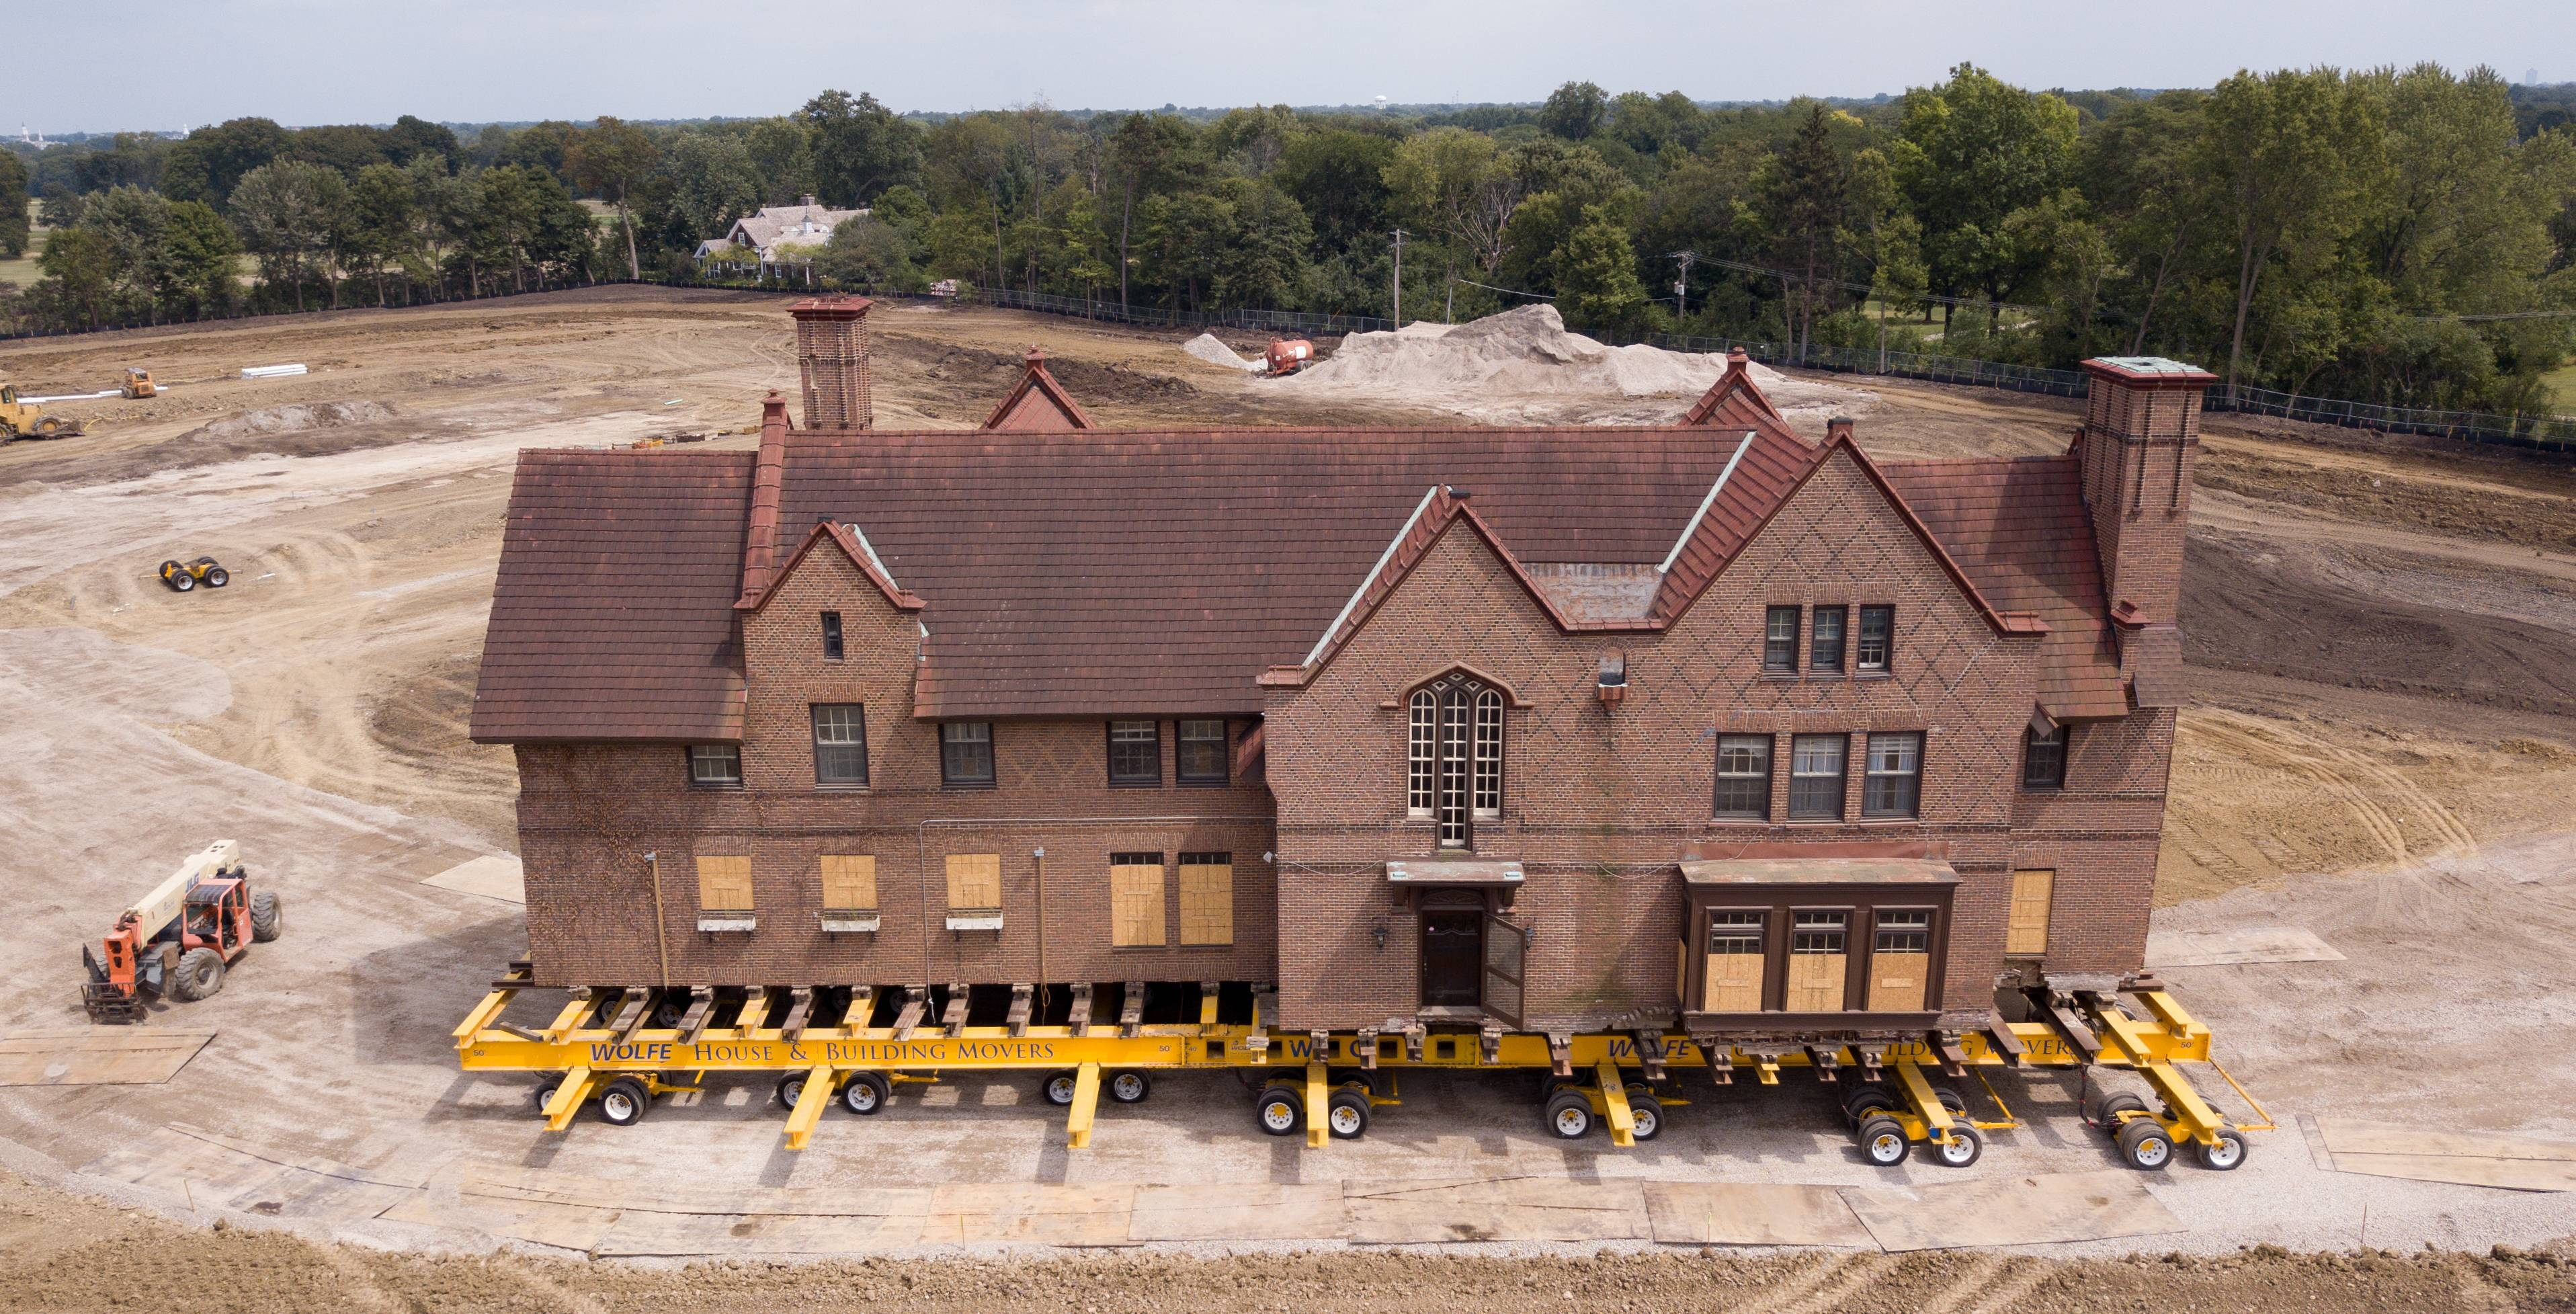 Lifted onto dollies, 729-ton House of Seven Gables moved at a glacial pace down a gravel road installed by Pulte Homes, the company redeveloping the Loretto Convent campus.